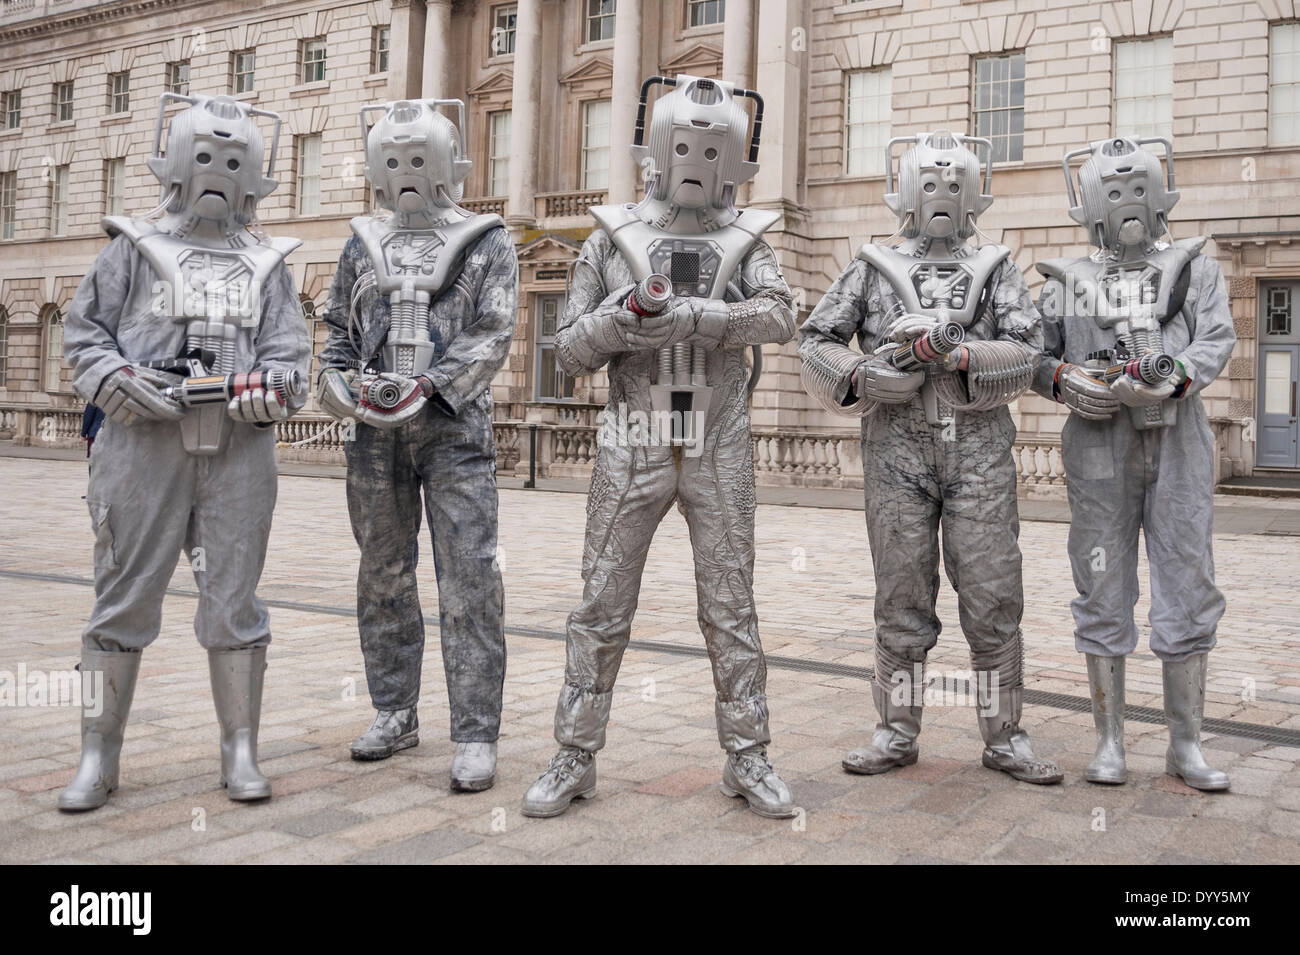 London, 27 April 2014 - people dressed as their favourite sci-fi characters take part in the Sci-Fi London 2014 costume parade starting at Somerset House and finishing at the BFI on the South Bank.  Cybermen at Somerset House.    Credit:  Stephen Chung/Alamy Live News - Stock Image